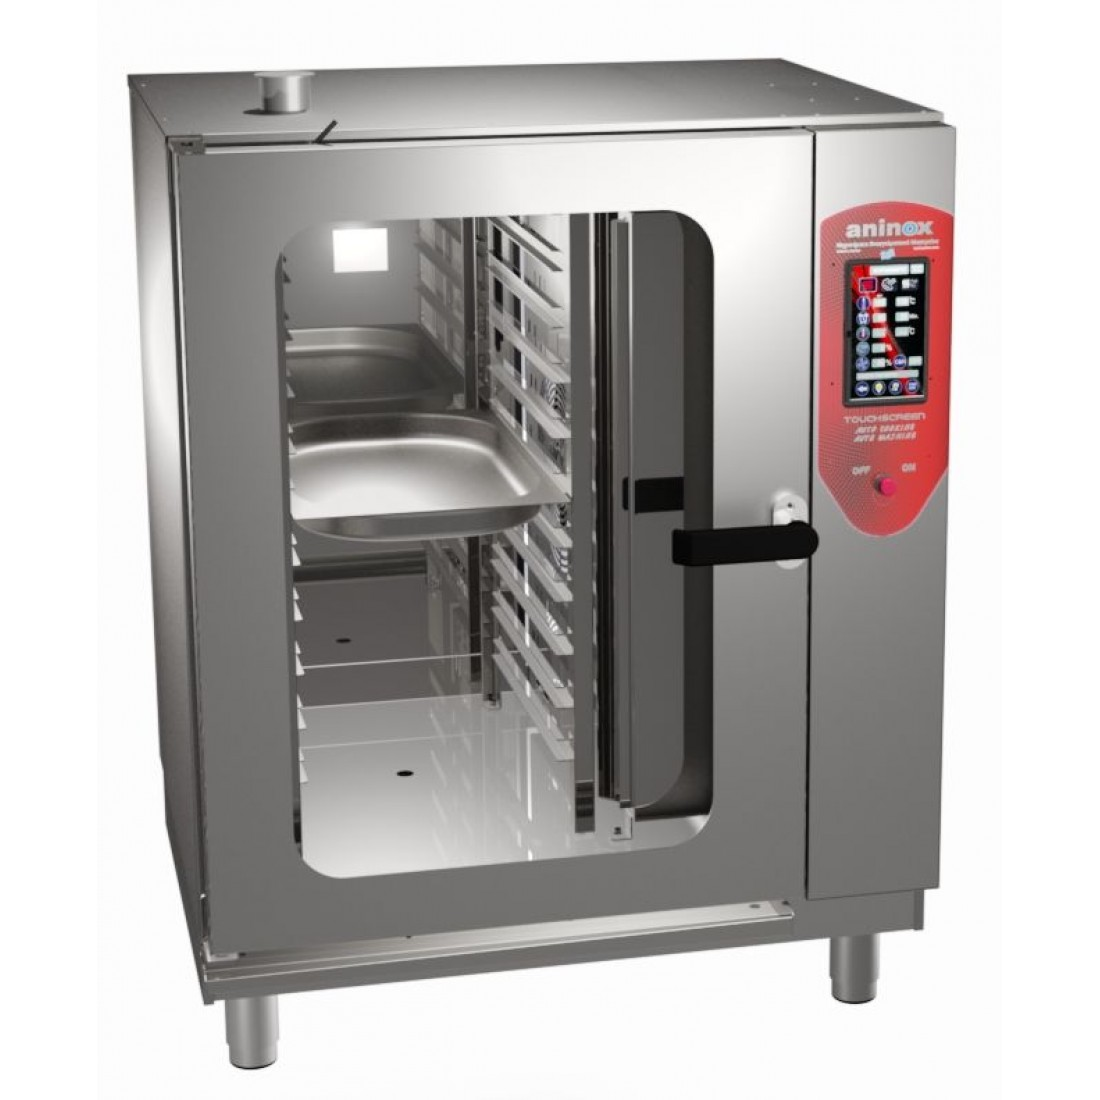 TOUCH SCREEN ELECTRIC COMBI-STEAM OVEN